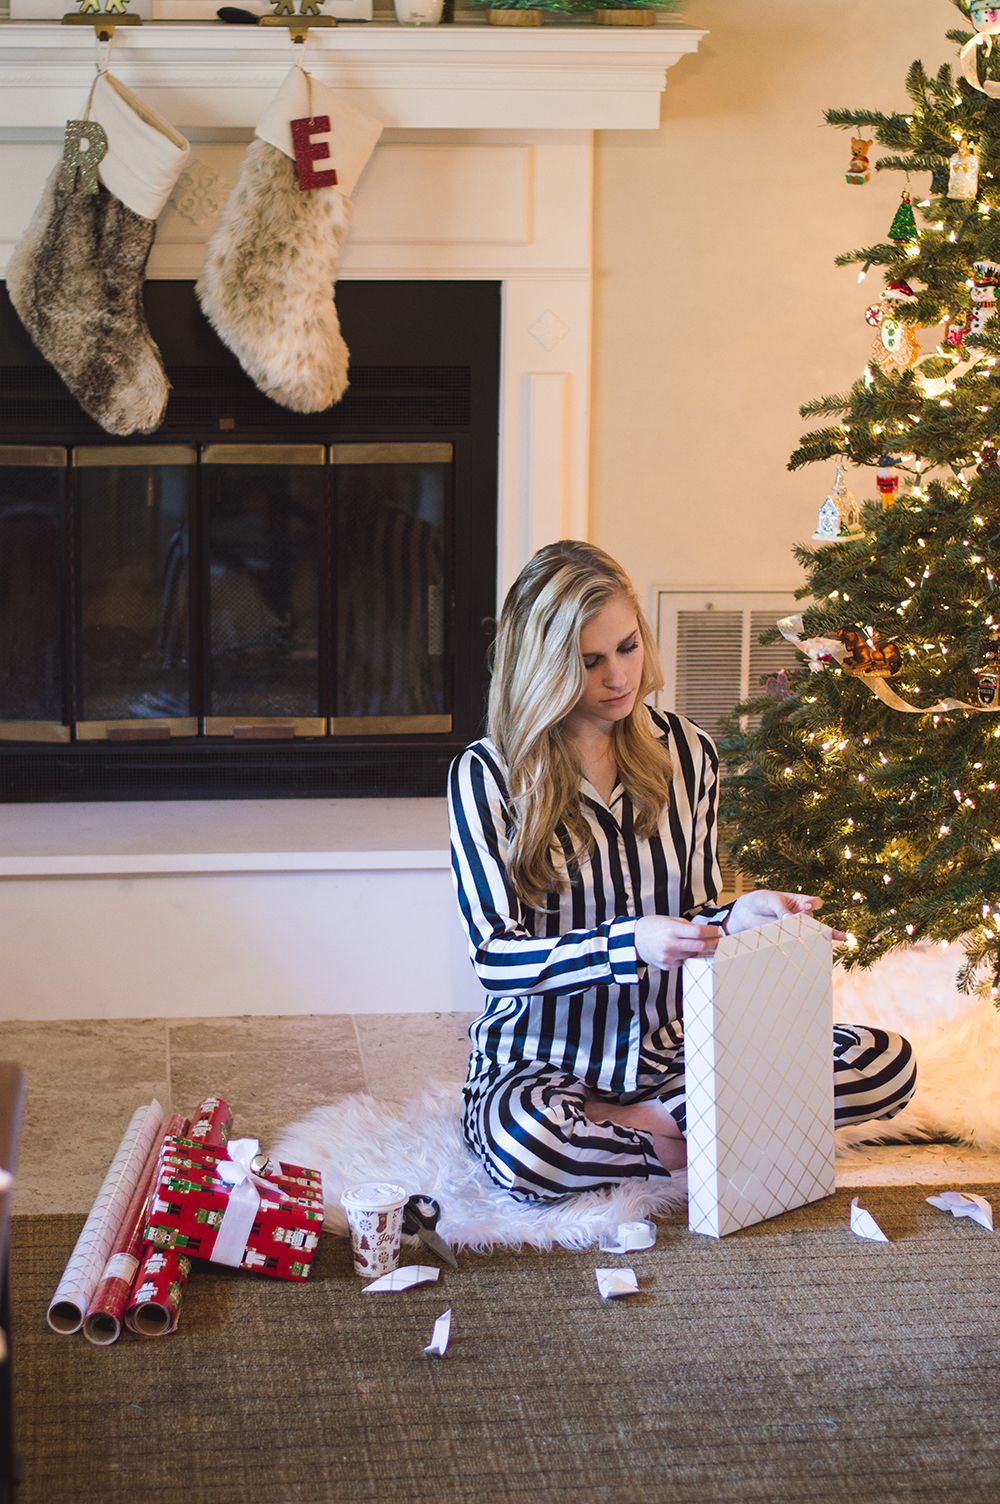 styelled-blog-fashion-blogger-style-wrapping-target-paper-christmas-gift-wrap-bows-glitter-nutcracker-tree-ornaments-stockings-pajamas-boohoo-tutorial-diy-14